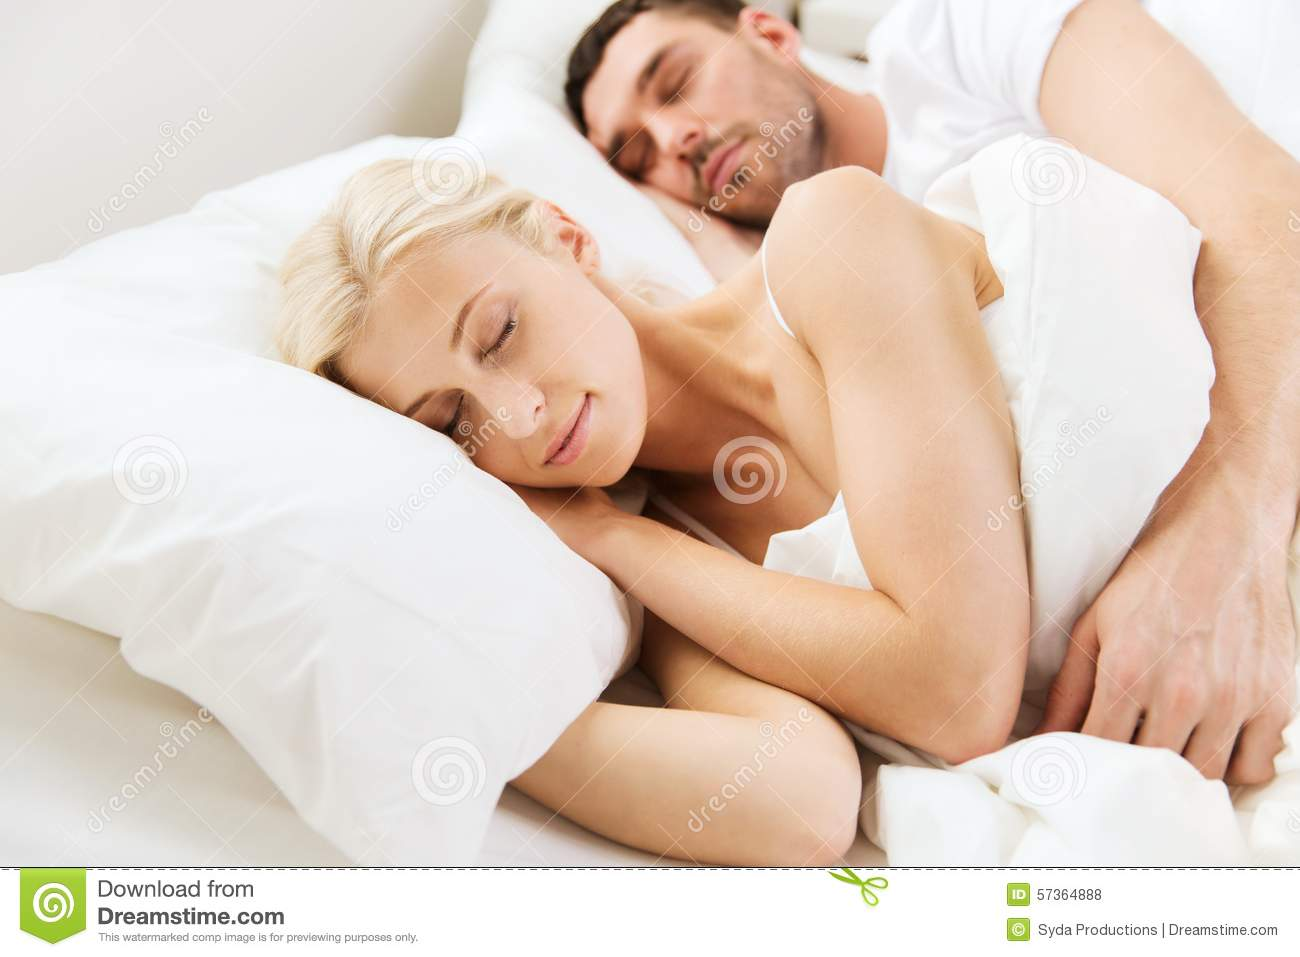 happy-couple-sleeping-bed-home-people-rest-relationships-happiness-concept-57364888.jpg